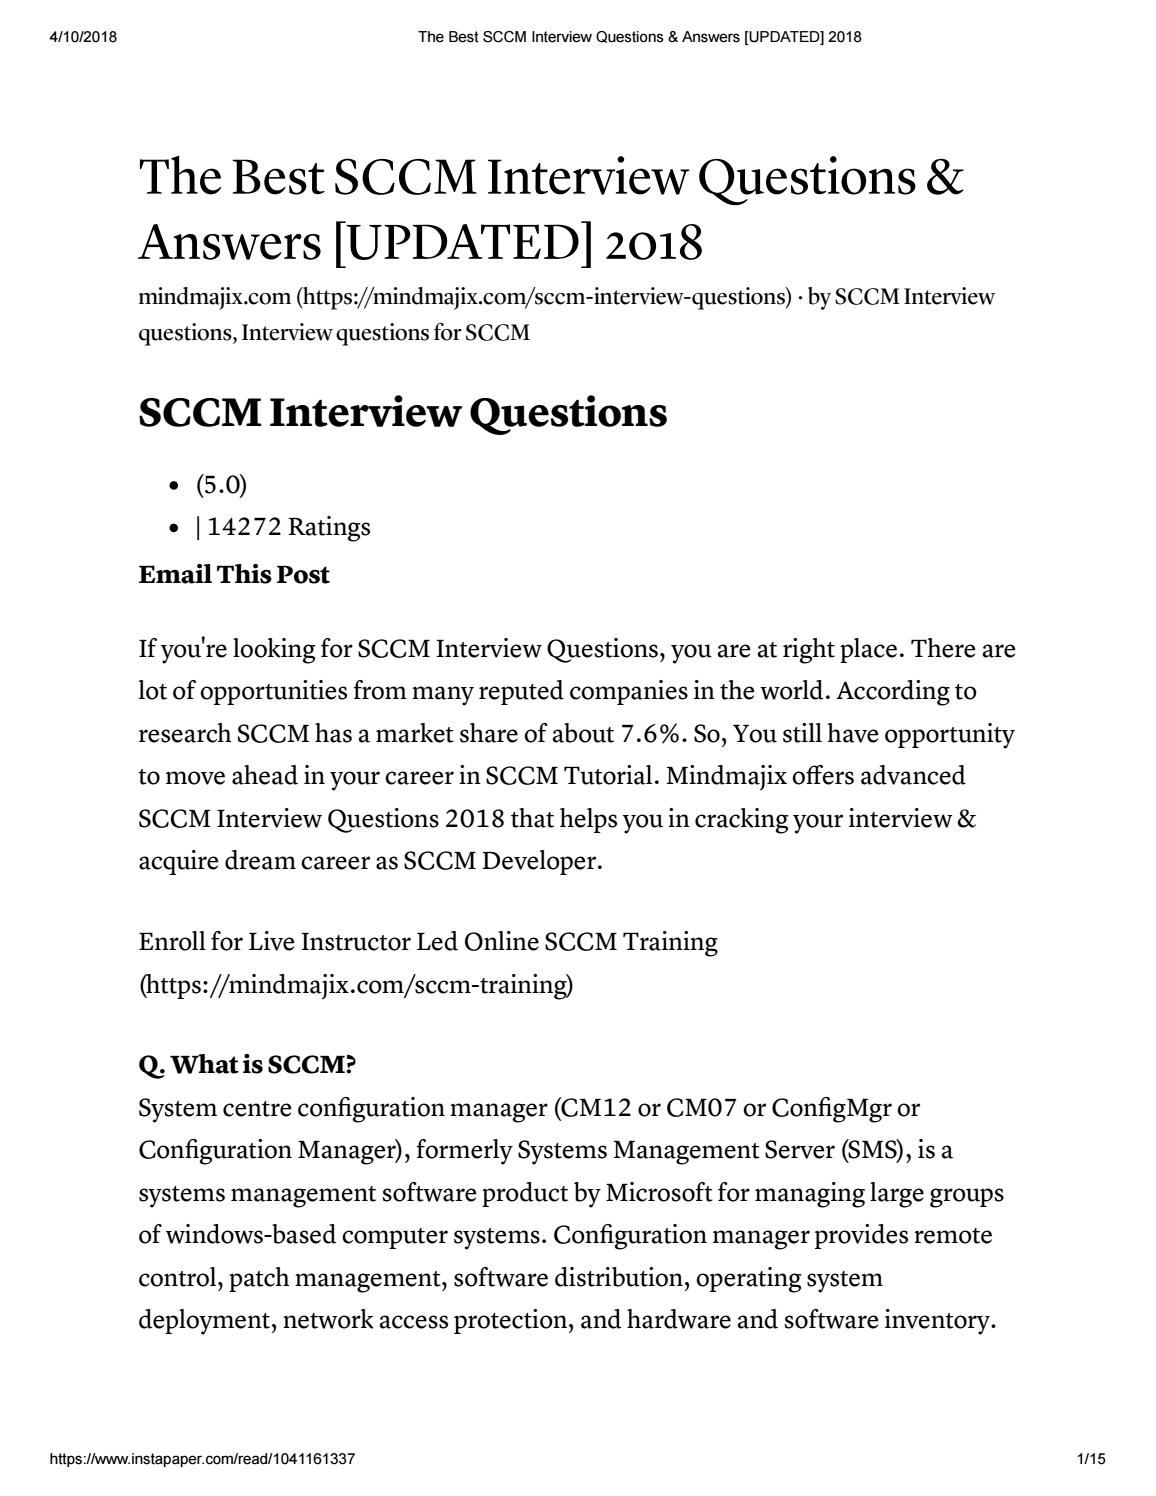 The best sccm interview questions & answers [updated] 2018